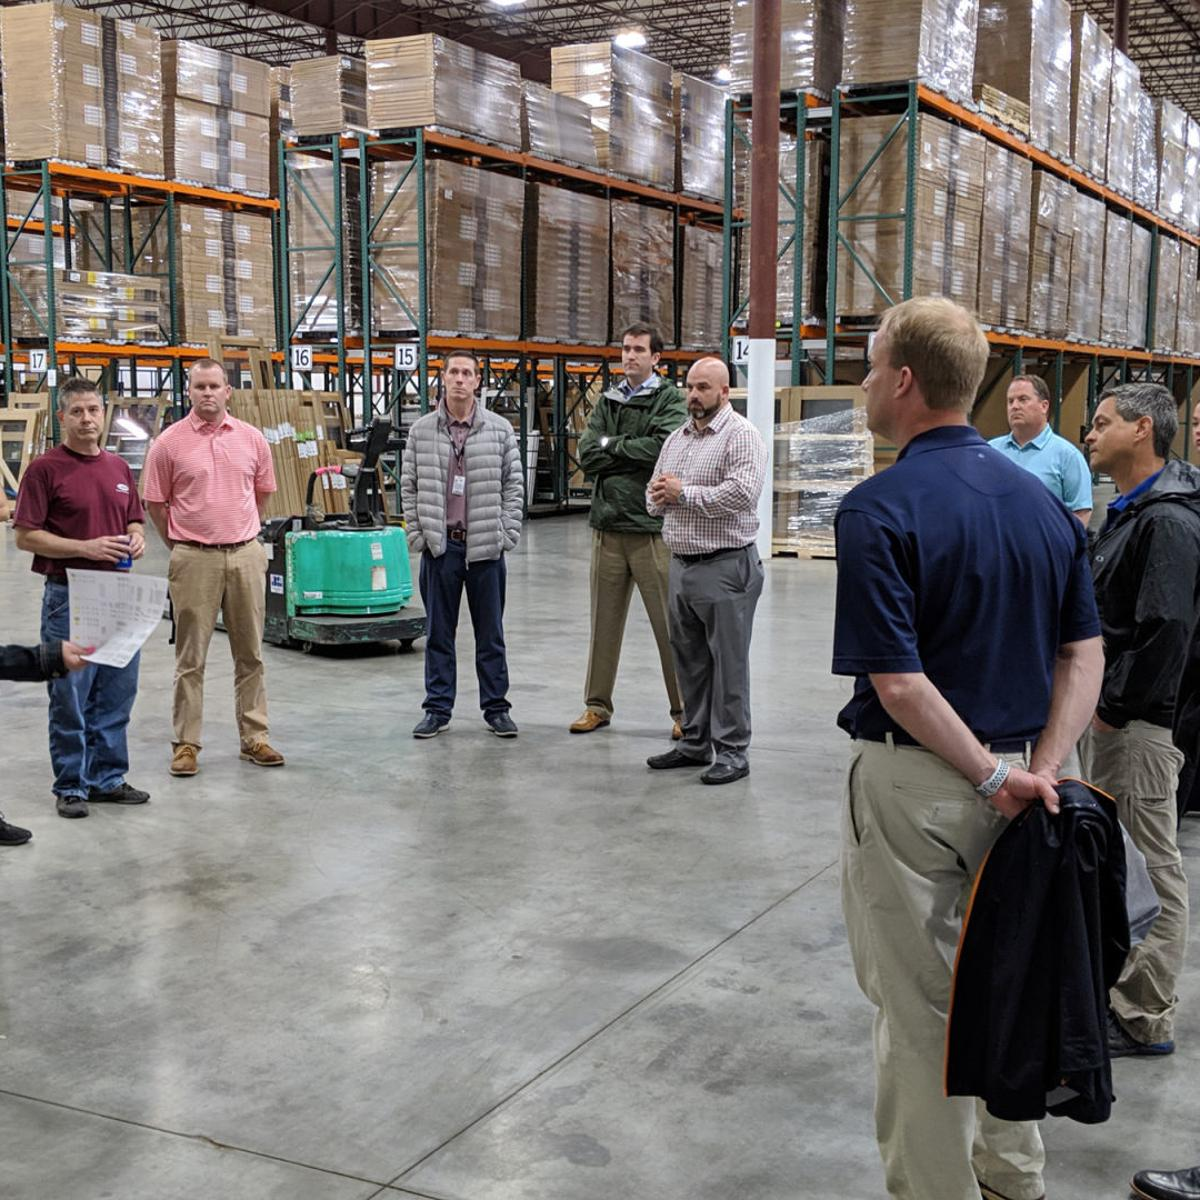 Distribution center opens in Mocksville, expected to add up to 50